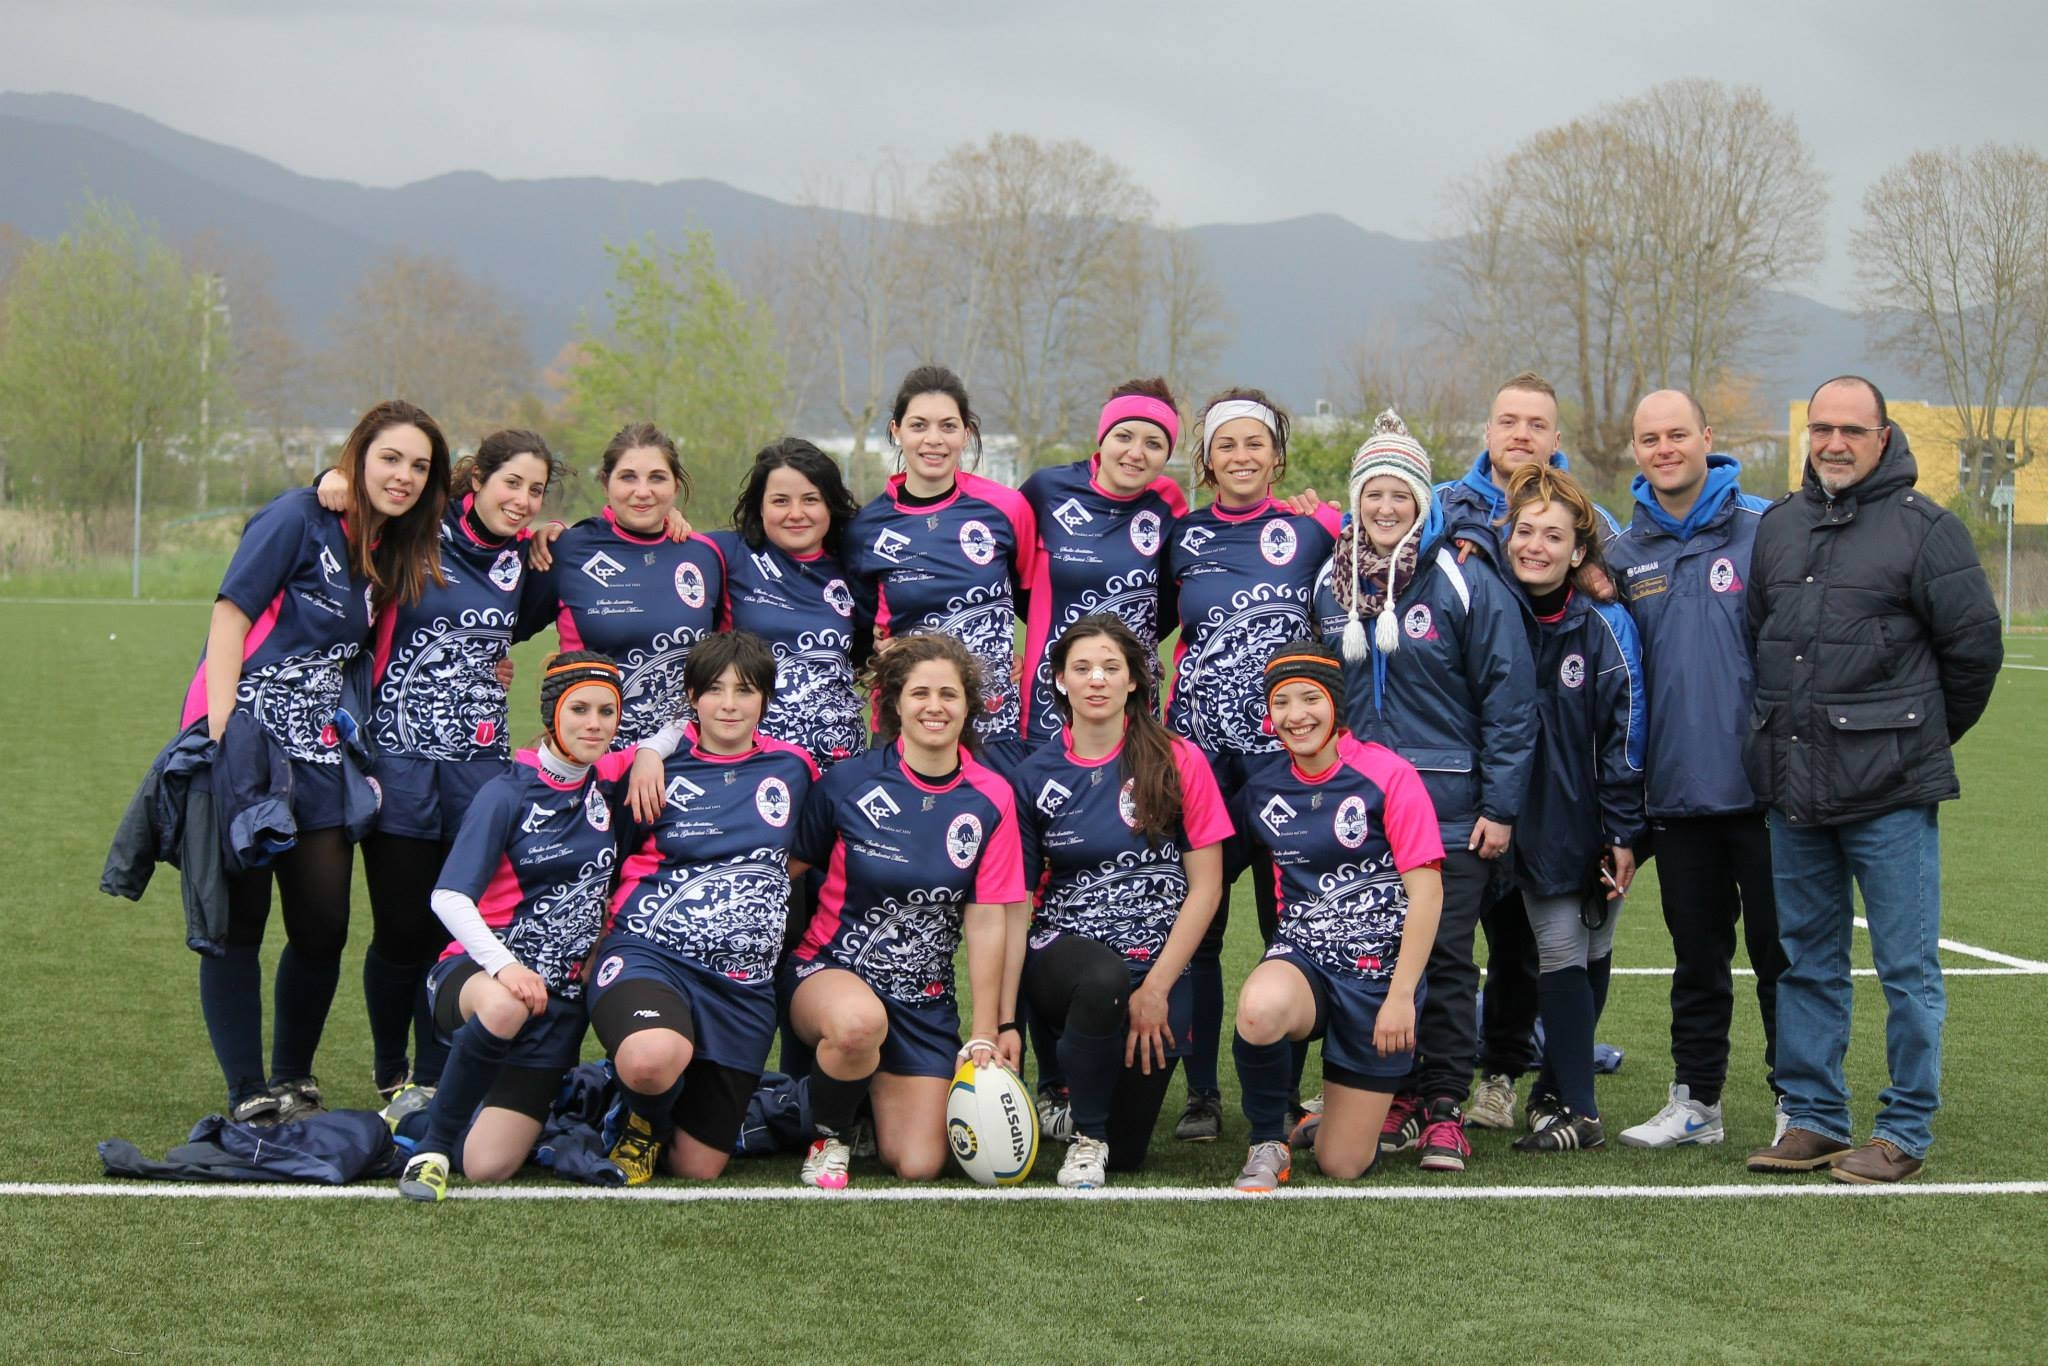 Le Ladies del Rugby Clanis tornano in campo con due vittorie